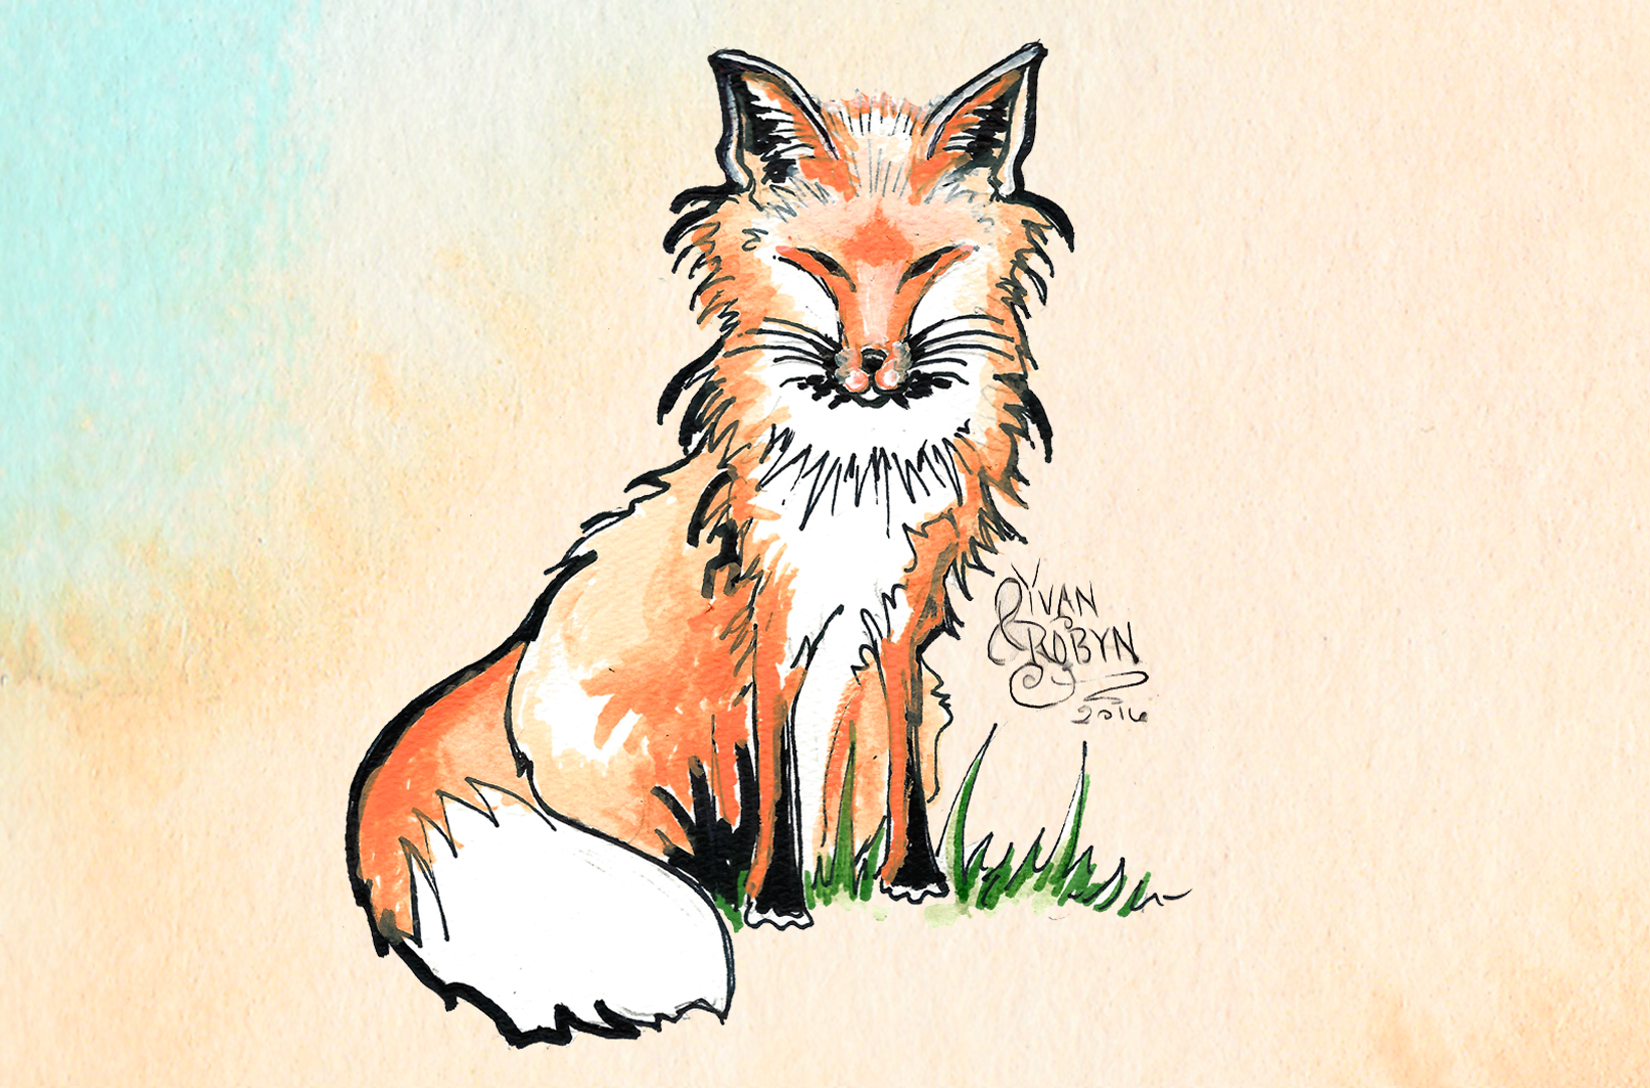 Fox Totem Animal  | Custom illustration for Yvan & Robyn's wedding | 2016